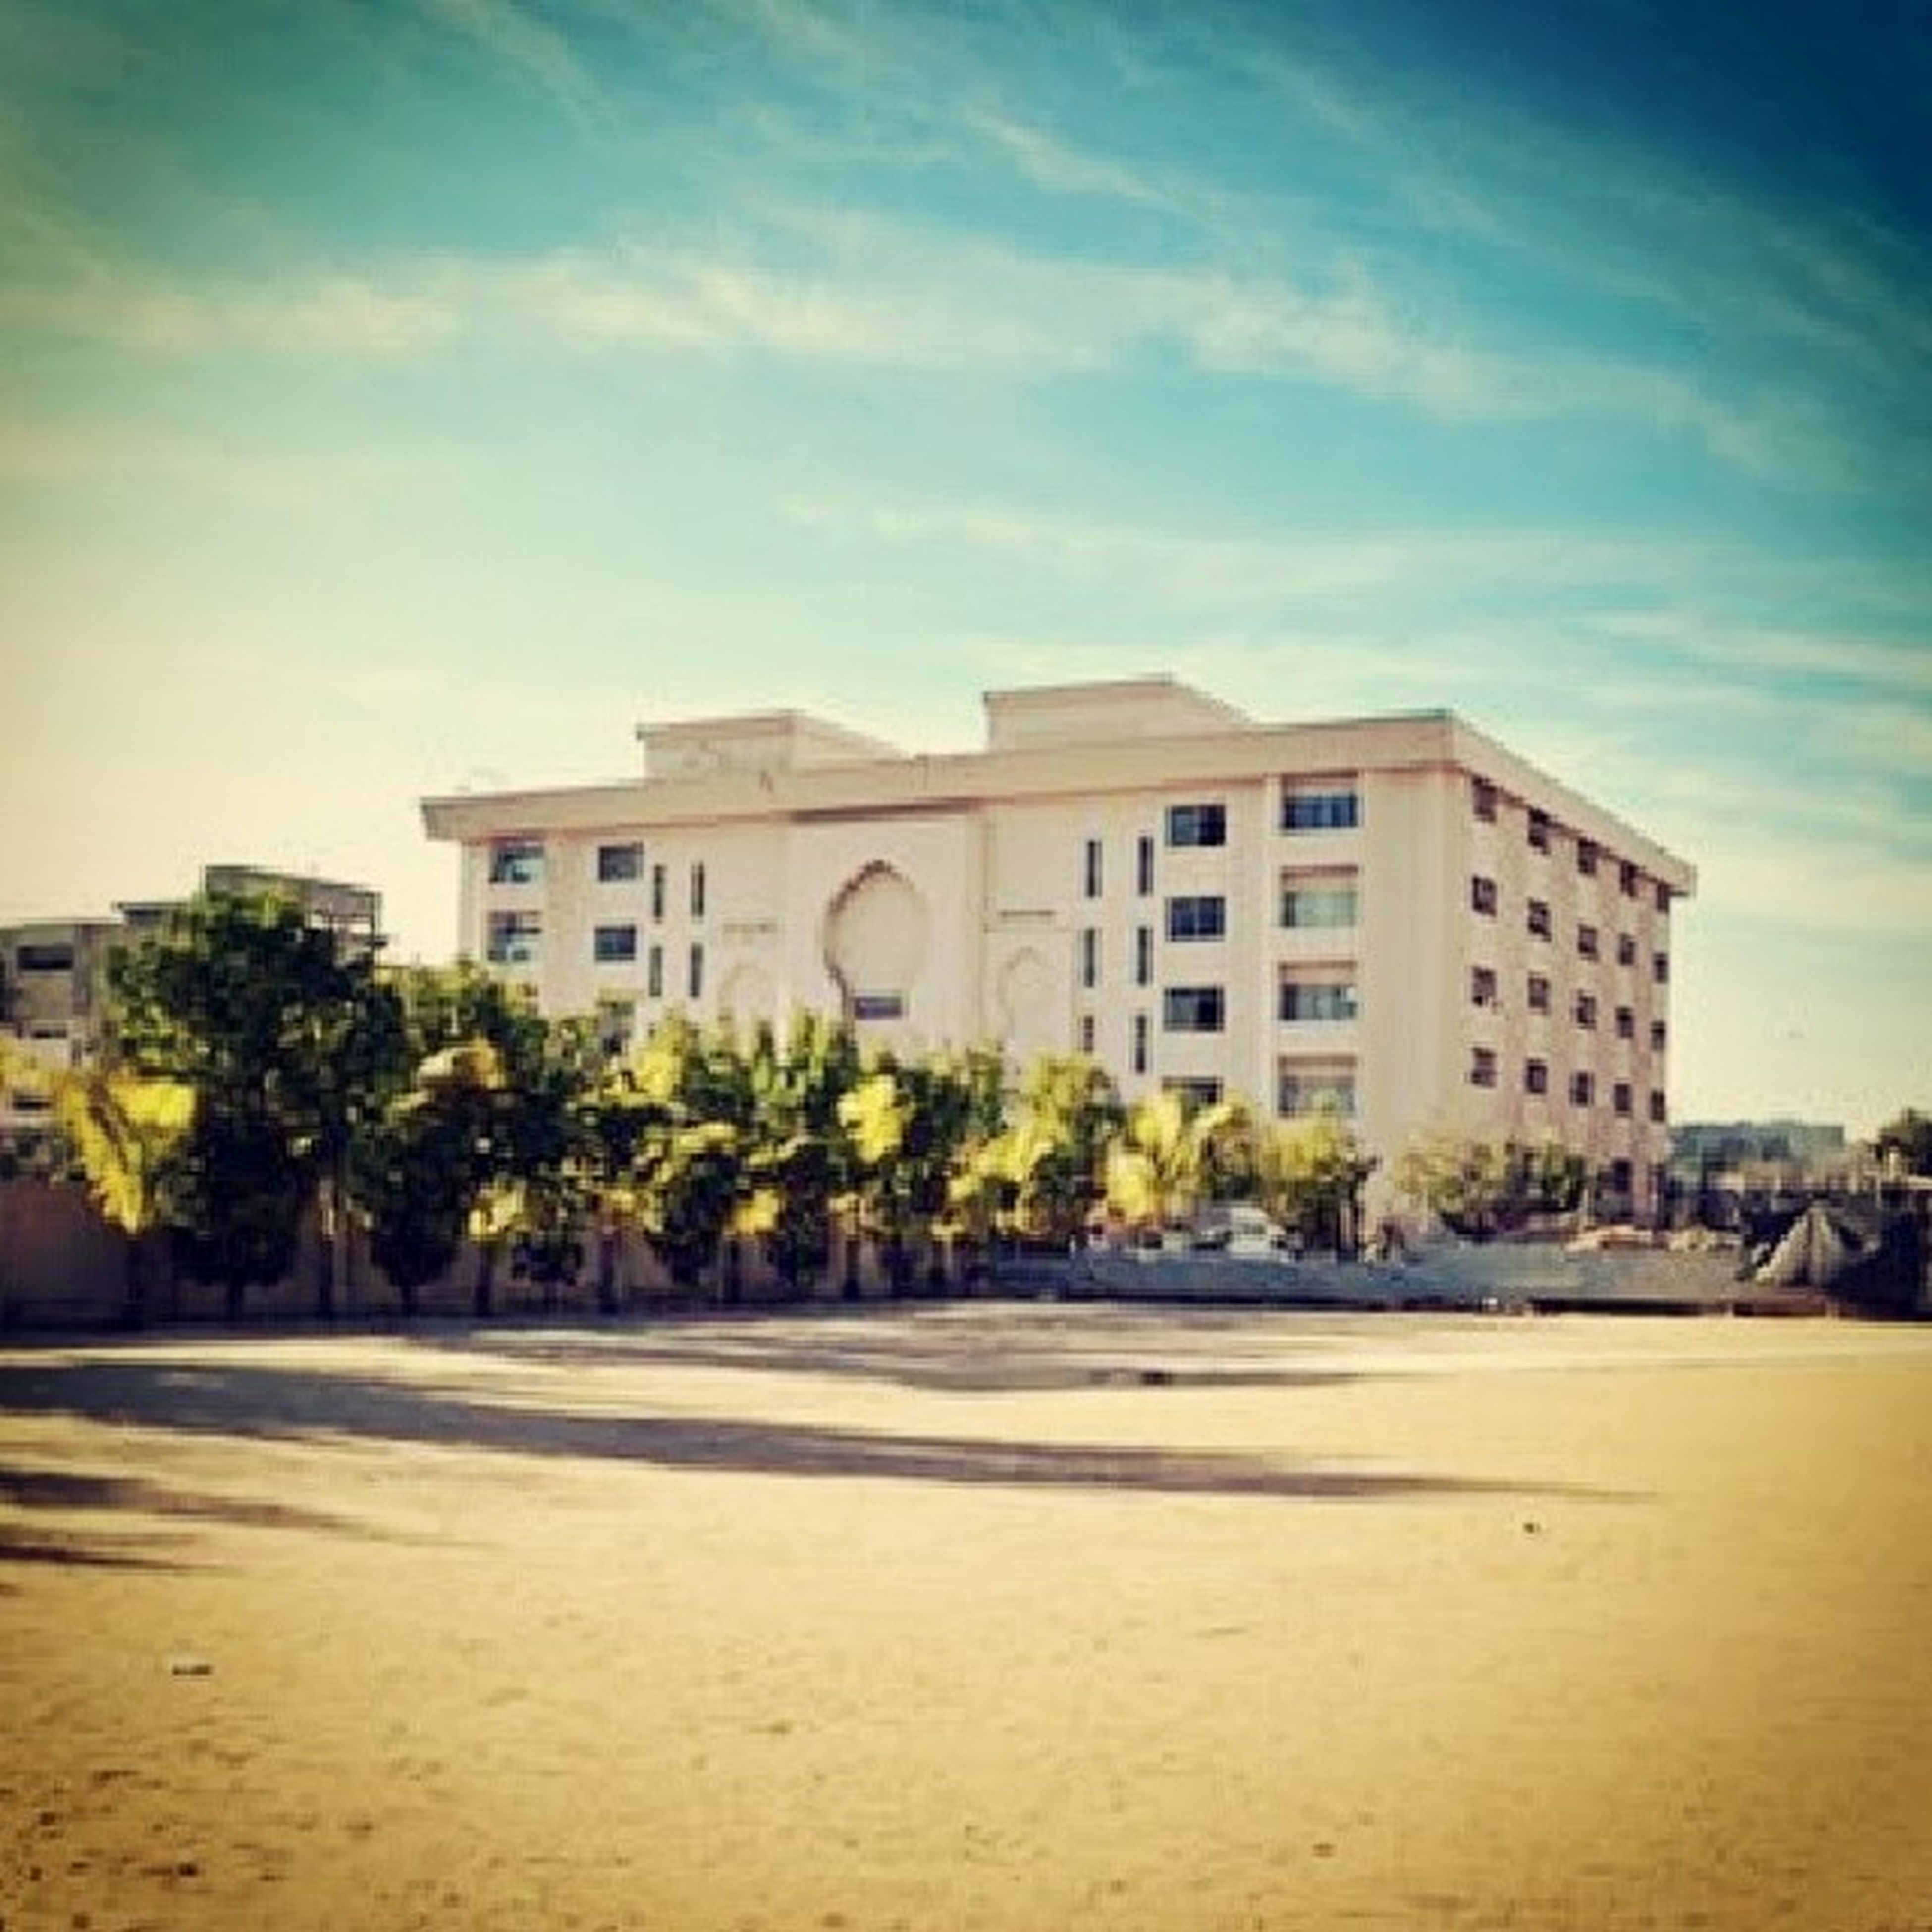 architecture, building exterior, built structure, sky, tree, palm tree, cloud - sky, cloud, house, sand, beach, sunlight, residential structure, day, outdoors, residential building, building, facade, incidental people, travel destinations